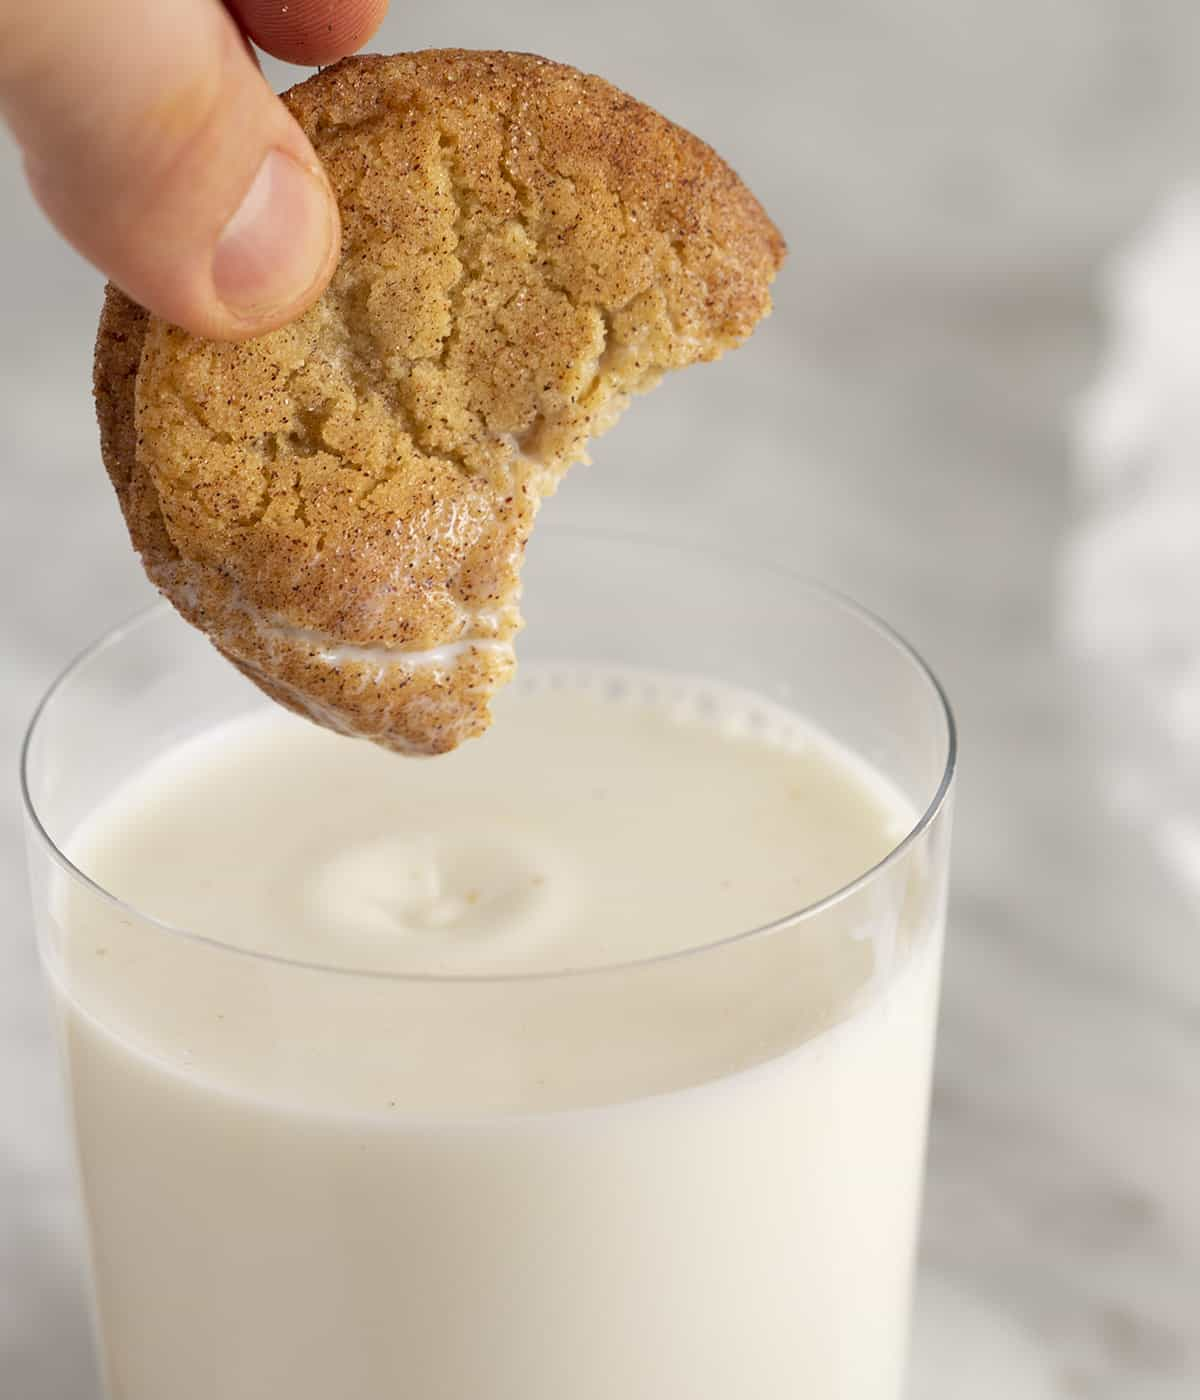 A Snickerdoodle cookie getting dipped into a glass of milk.